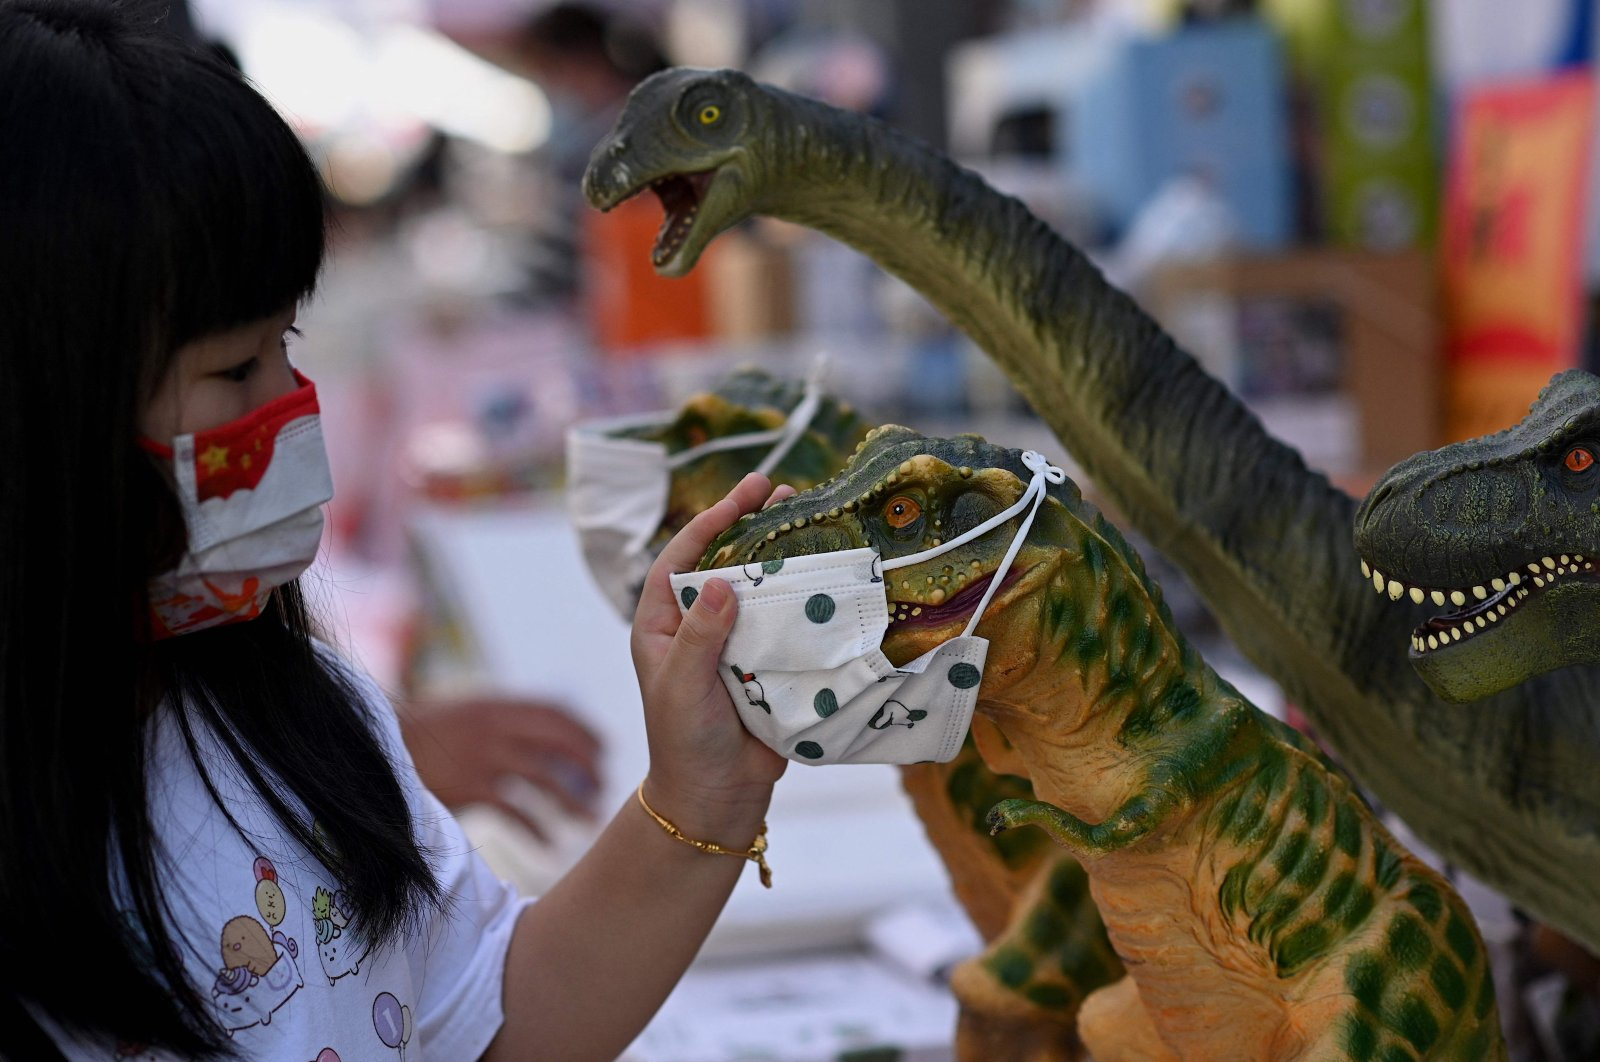 A girl looks at toy dinosaurs with face masks in Qianmen street in Beijing, China, Sept. 21, 2021. (AFP Photo)